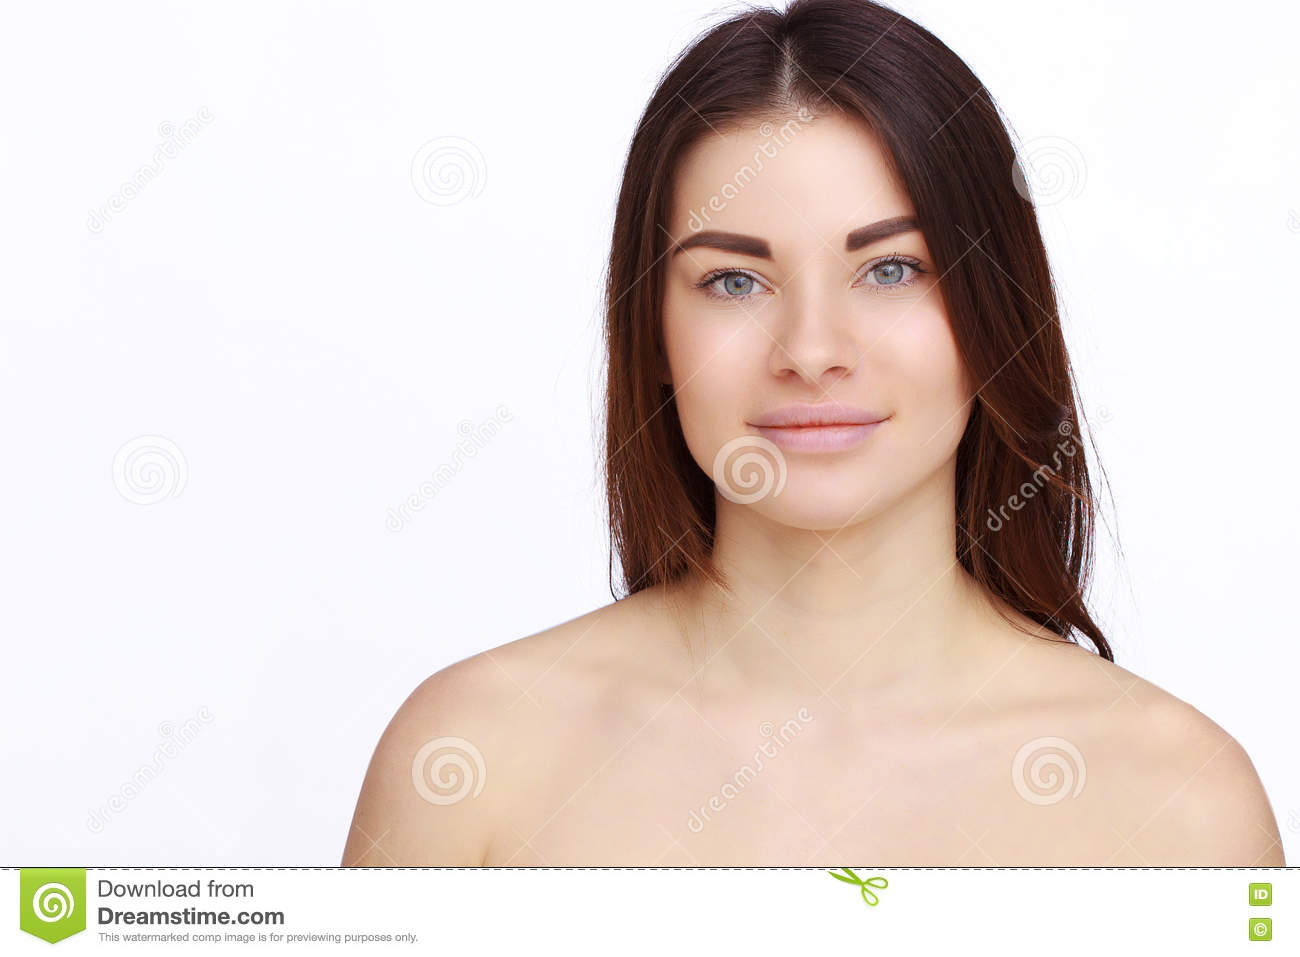 Girl with naked shoulders stock image. Image of model